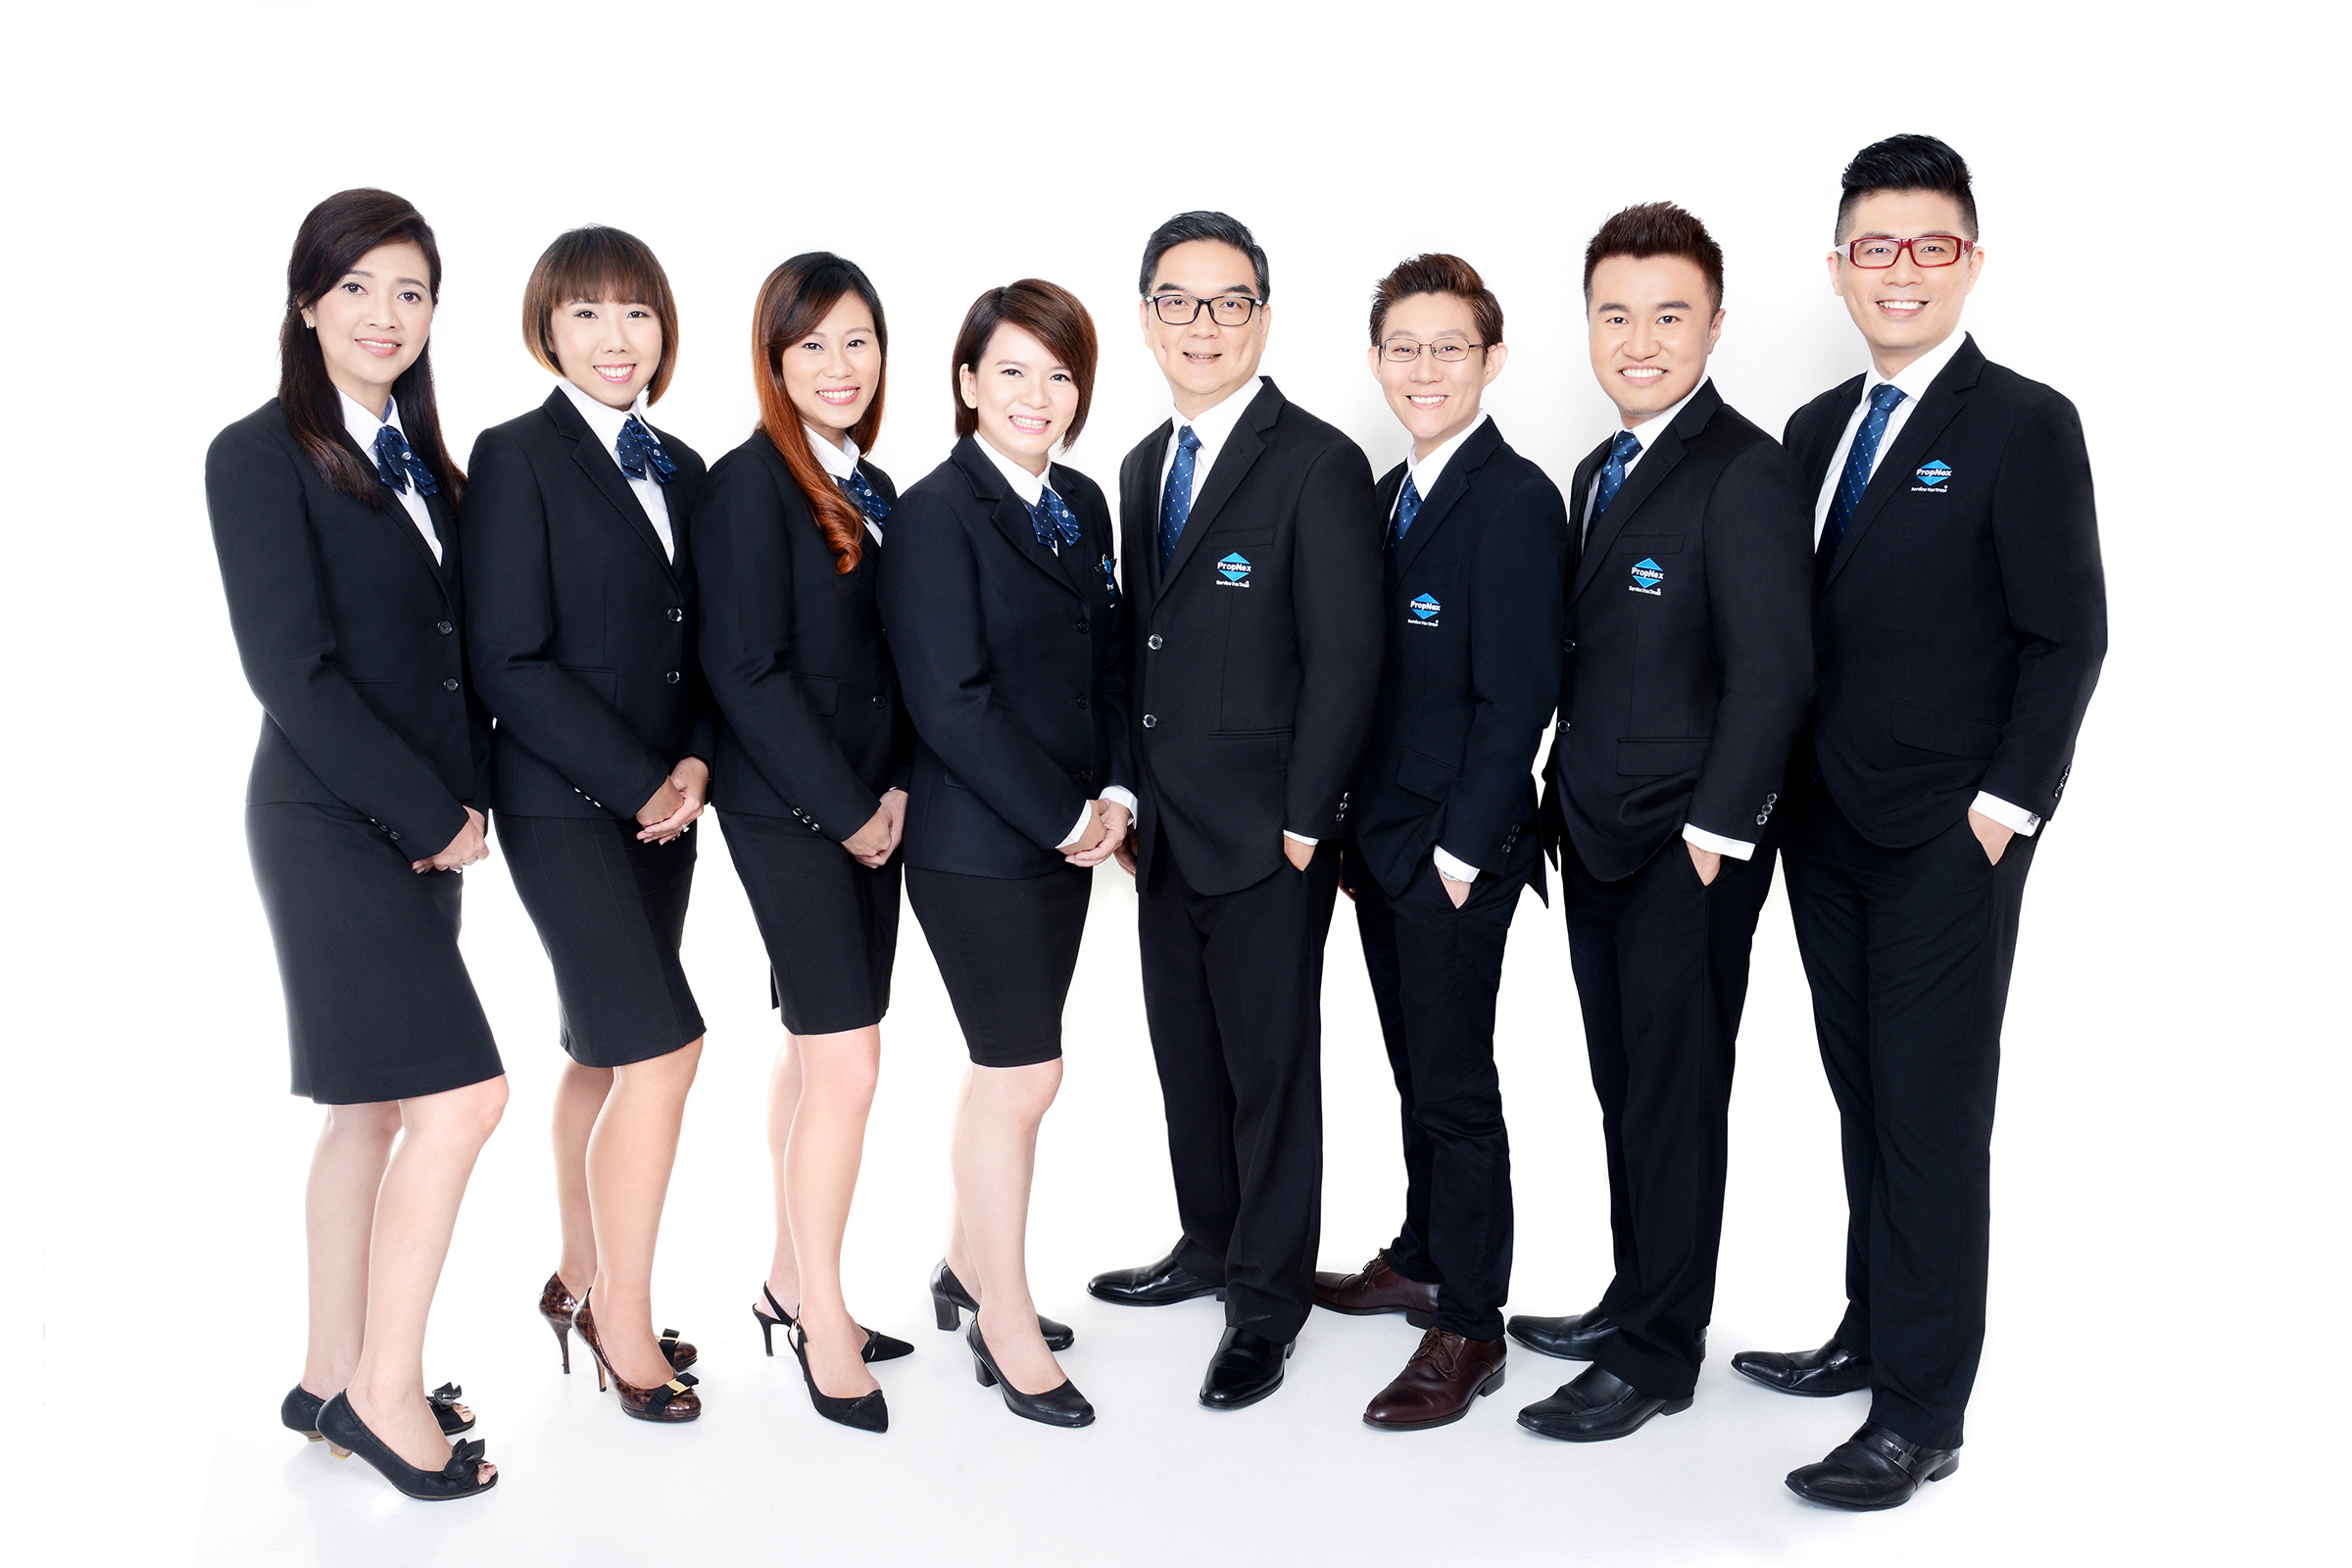 Experienced Property Agent - Ming Property Team photo standing